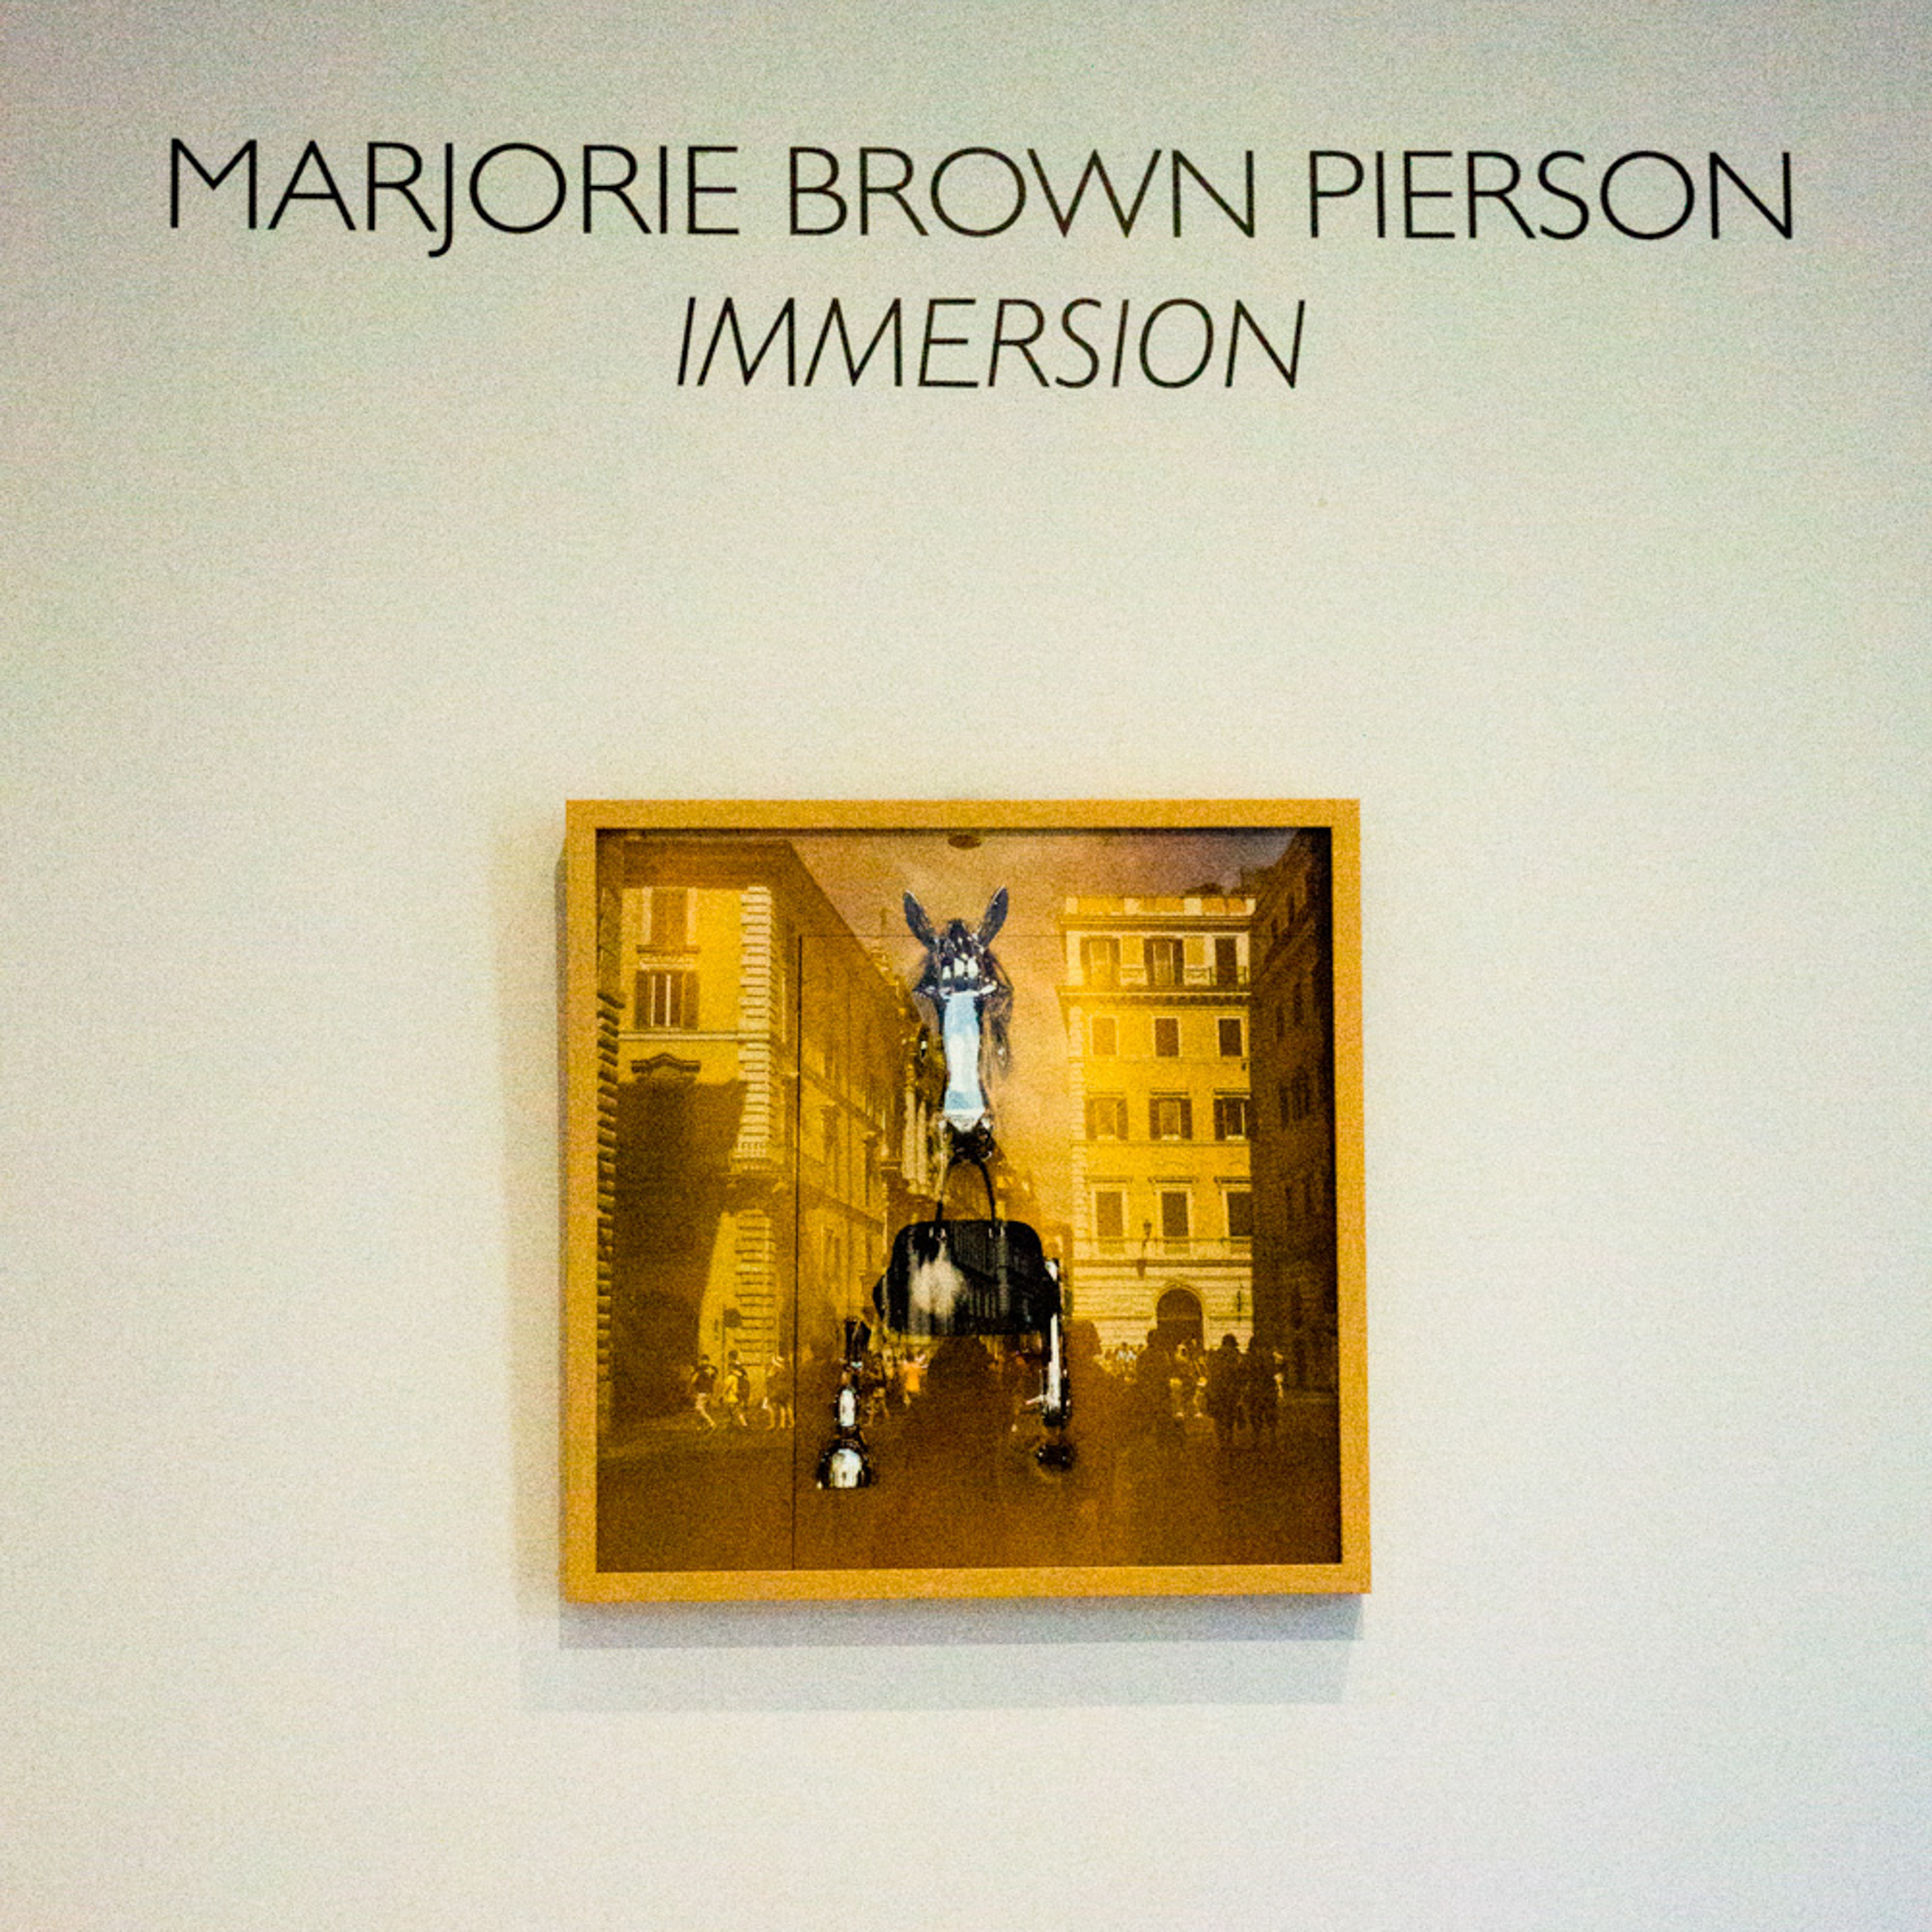 Immersion,  solo show at Martine Chaisson Gallery, New Orleans, LA 2014